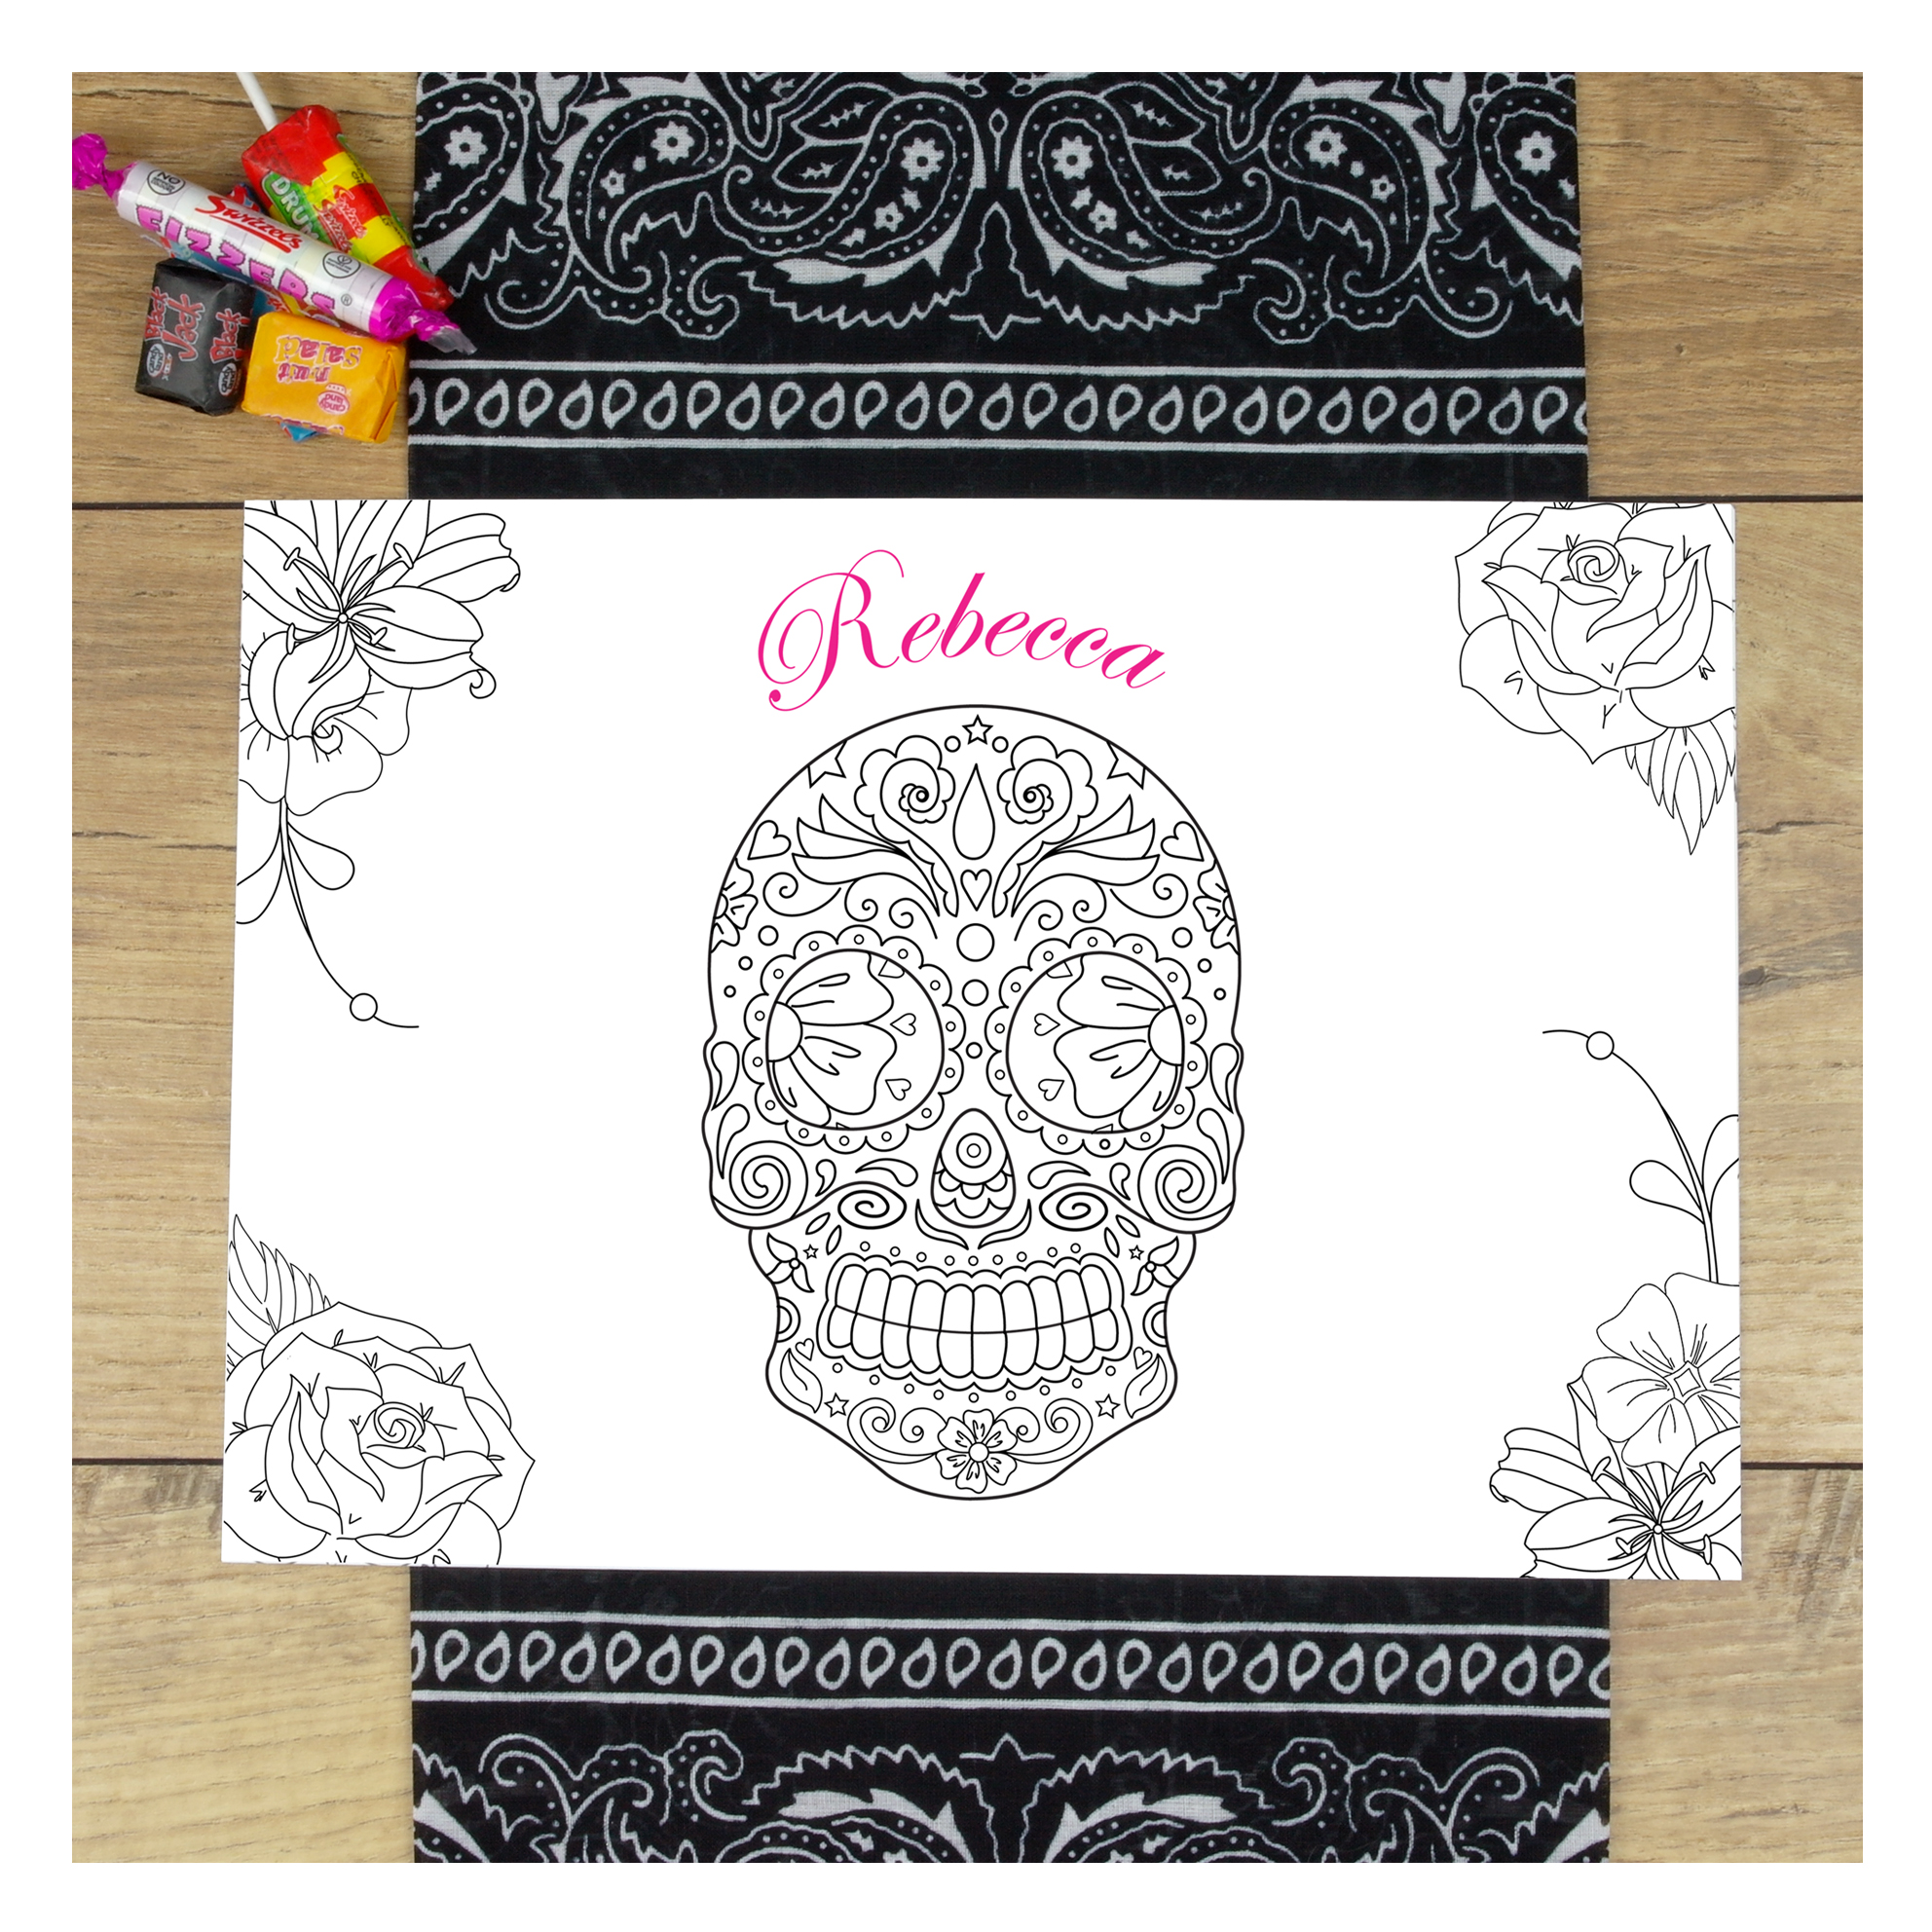 Chi-Chi-Moi-Halloween-Personalised-Sugar-Skull-Colouring-In-PlaceMat-1